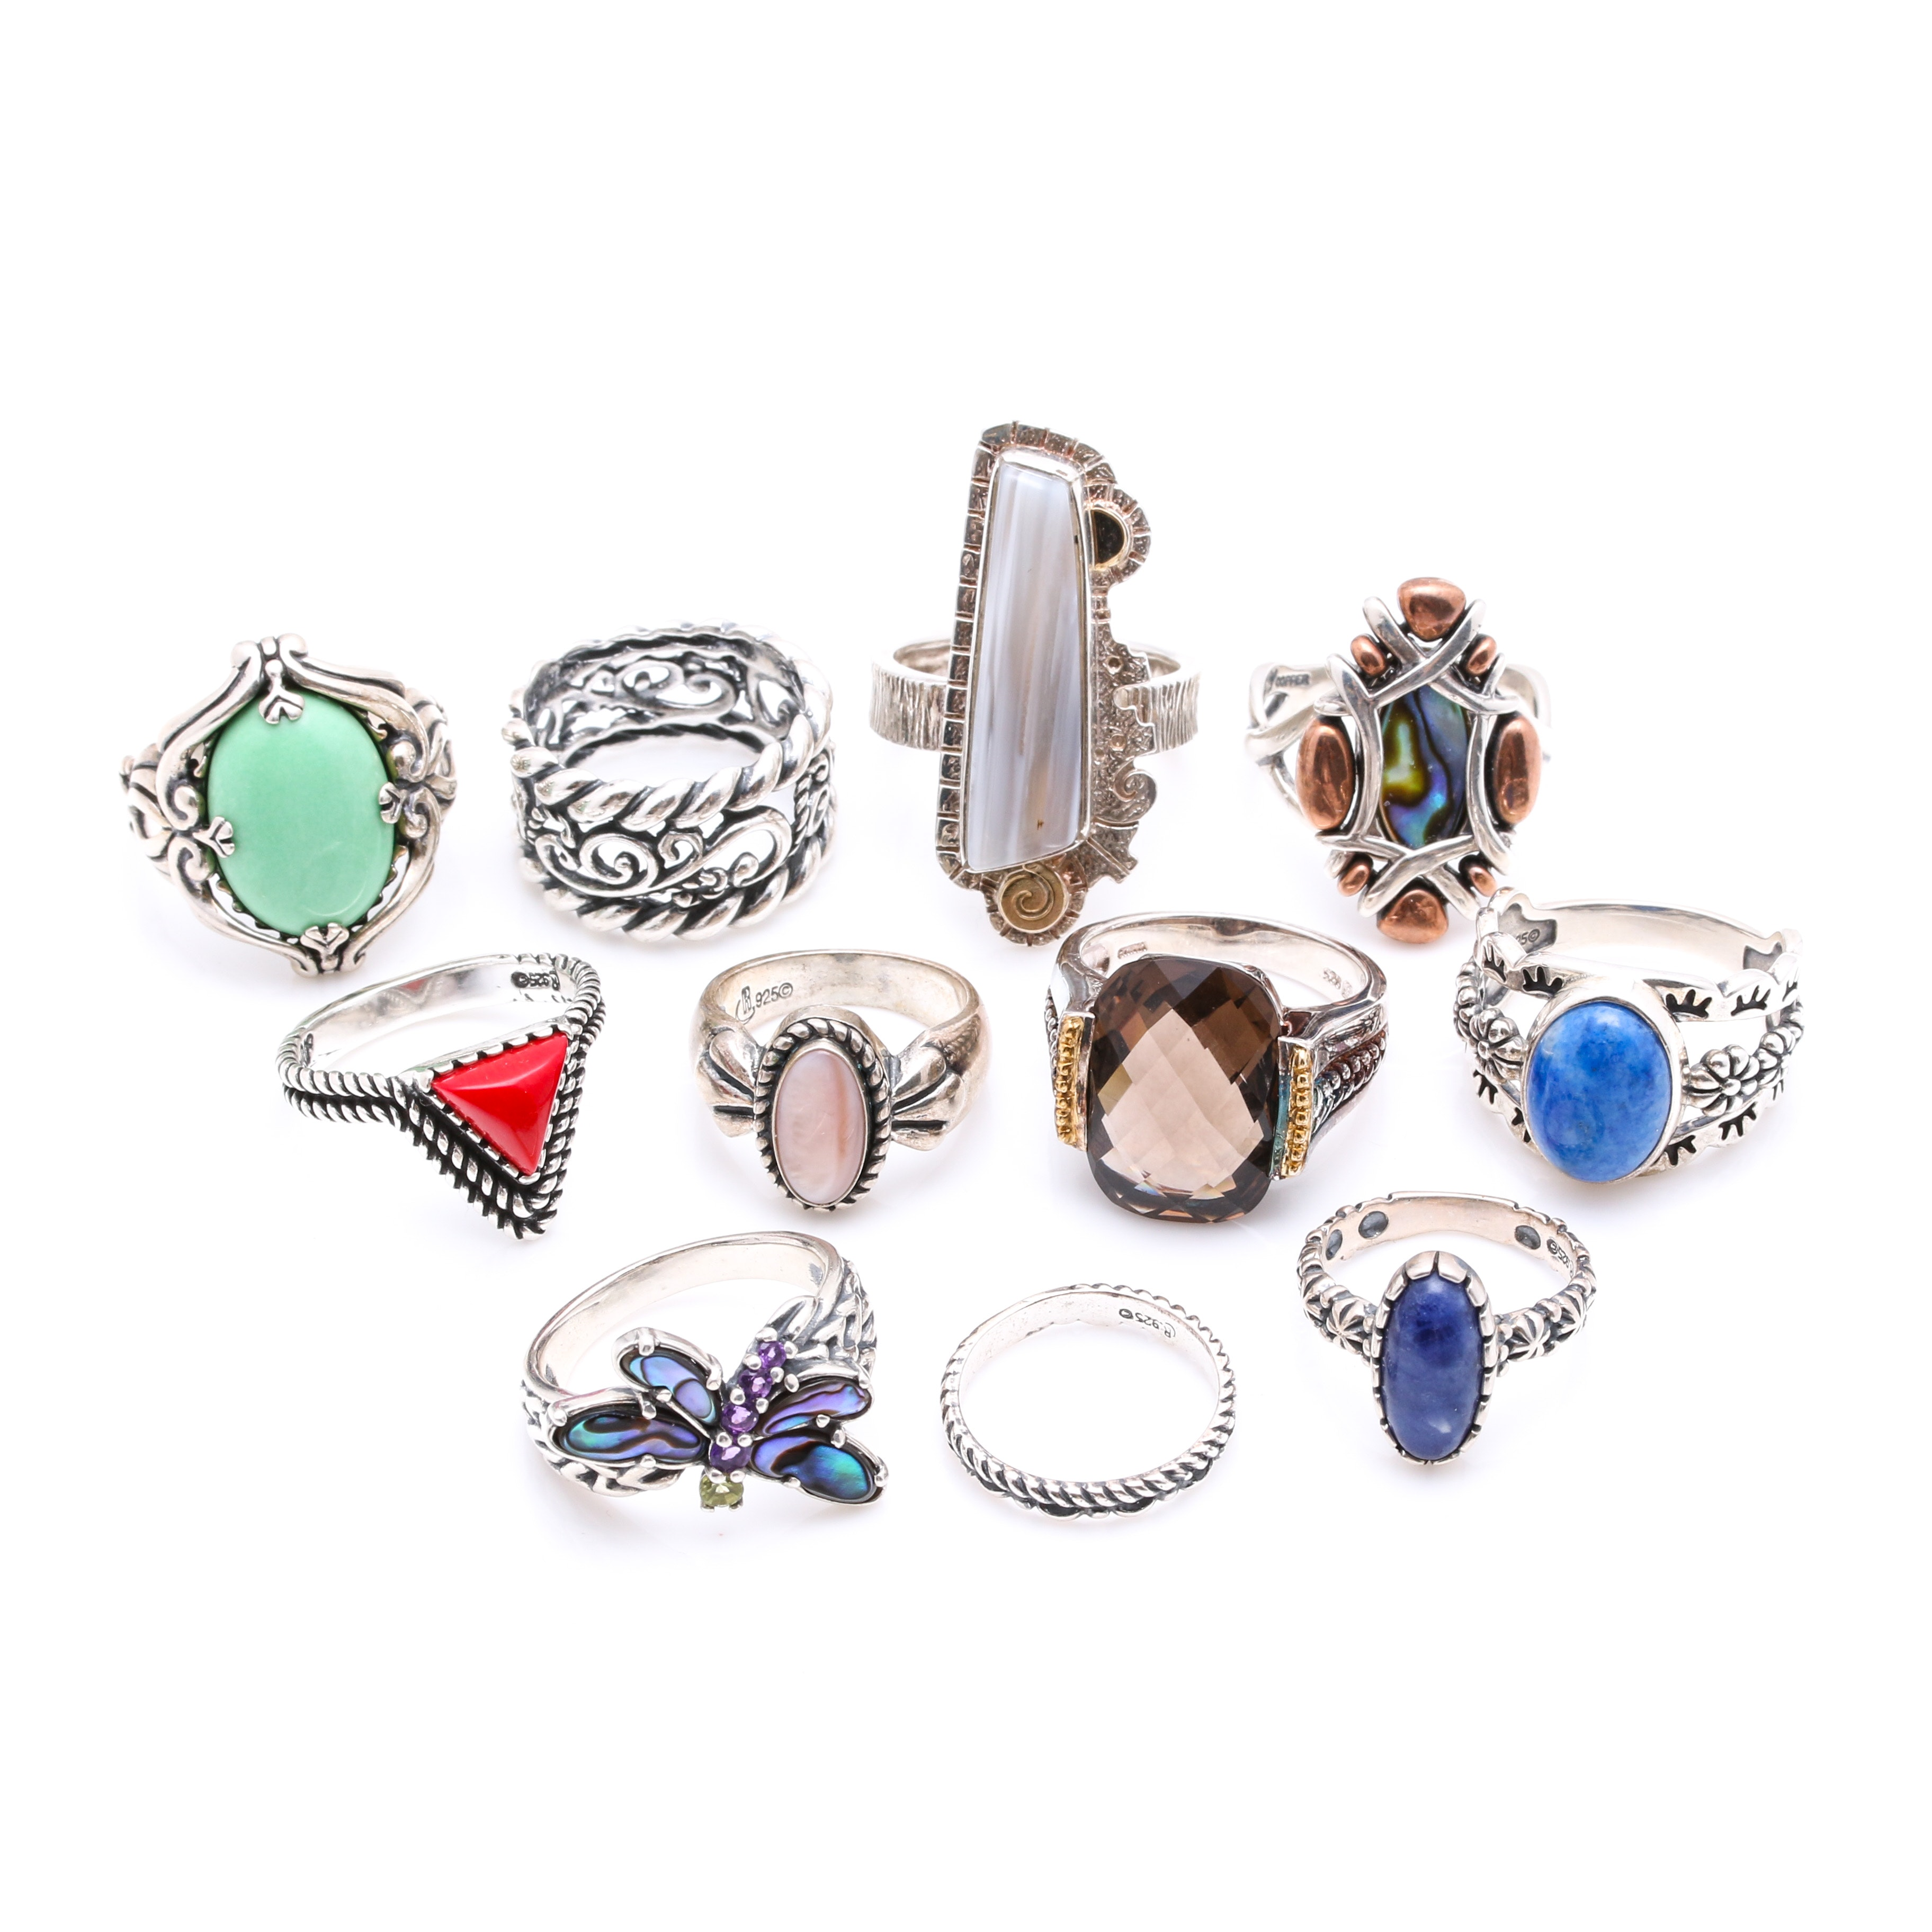 Sterling Silver Statement Rings Including Carolyn Pollack Relios Collection